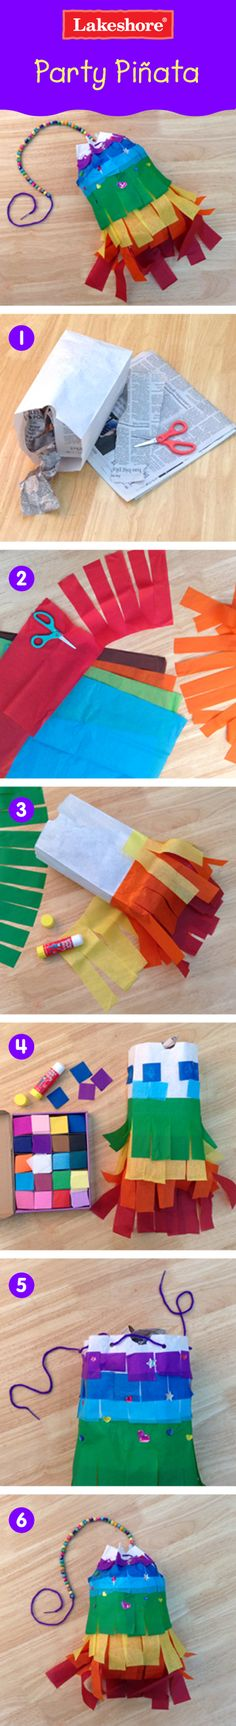 Decorate any room in the house with this colorful play piñata!